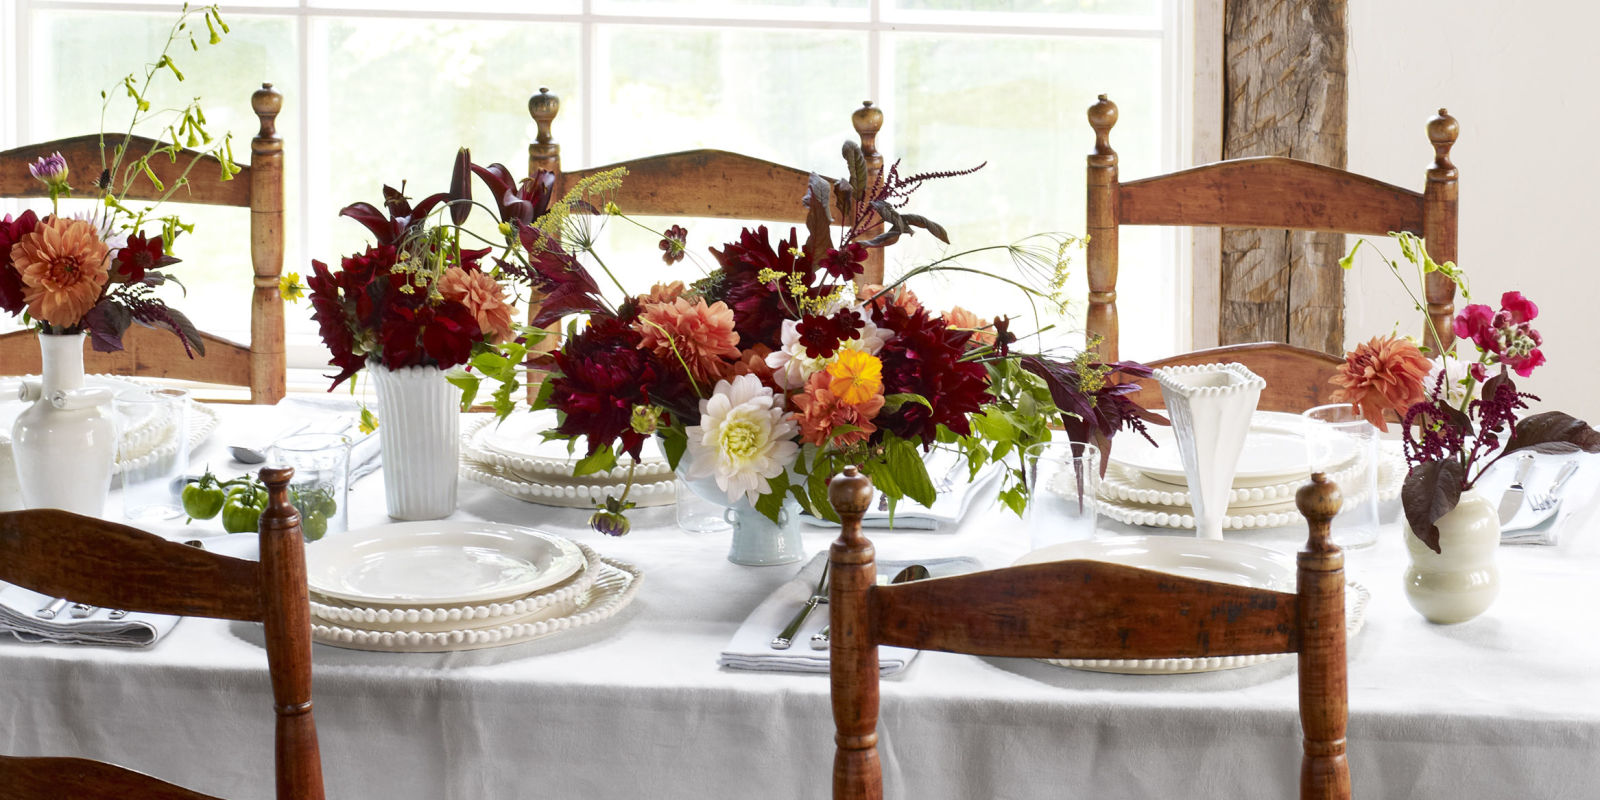 How To Decorate A Table table decorating ideas - elegant table decor and settings